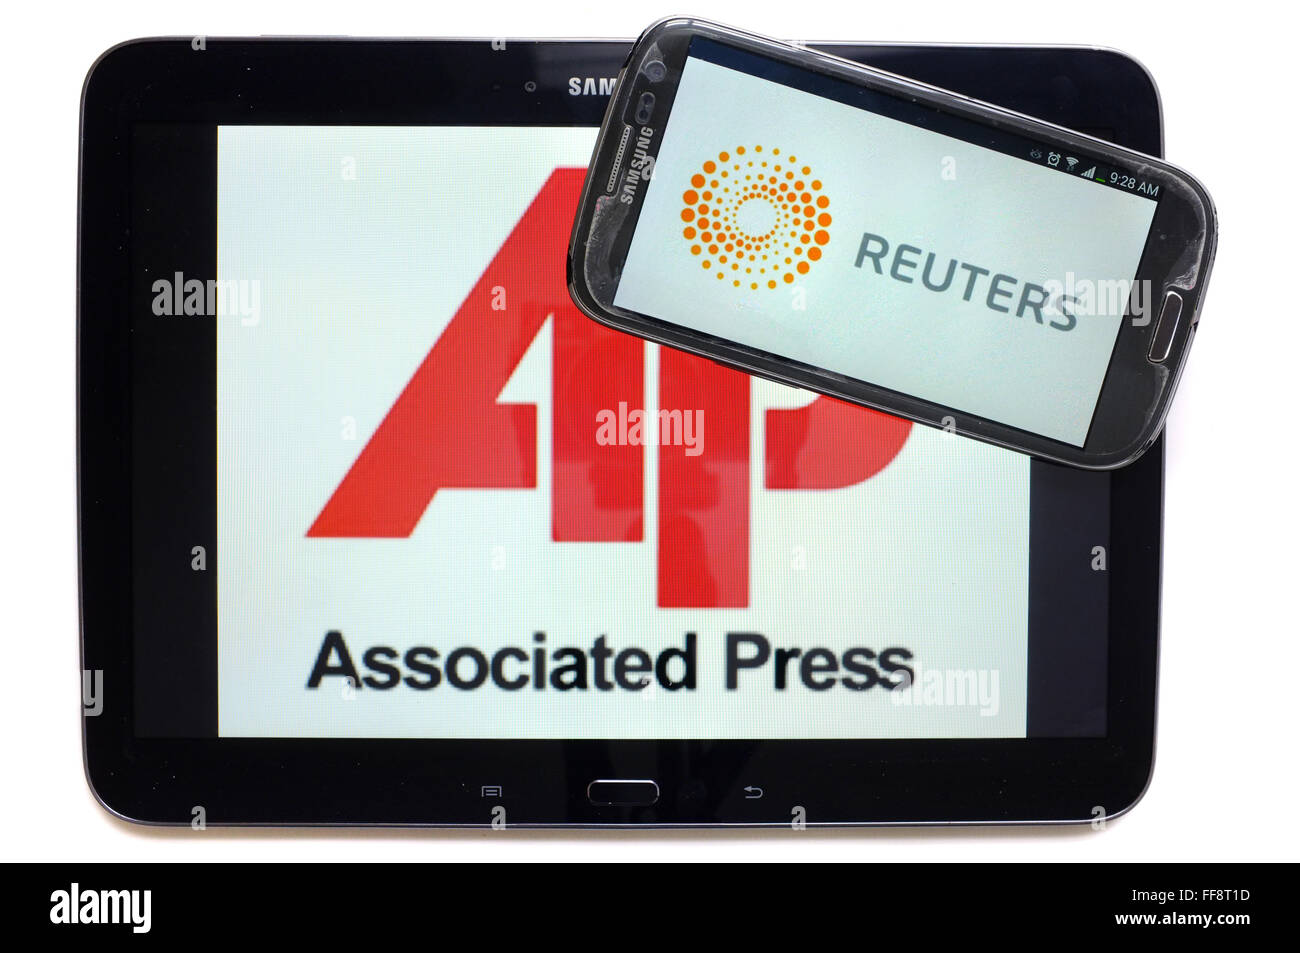 The news agencies AP and Reuters on the screens of a tablet and a smartphone photographed against a white background. - Stock Image